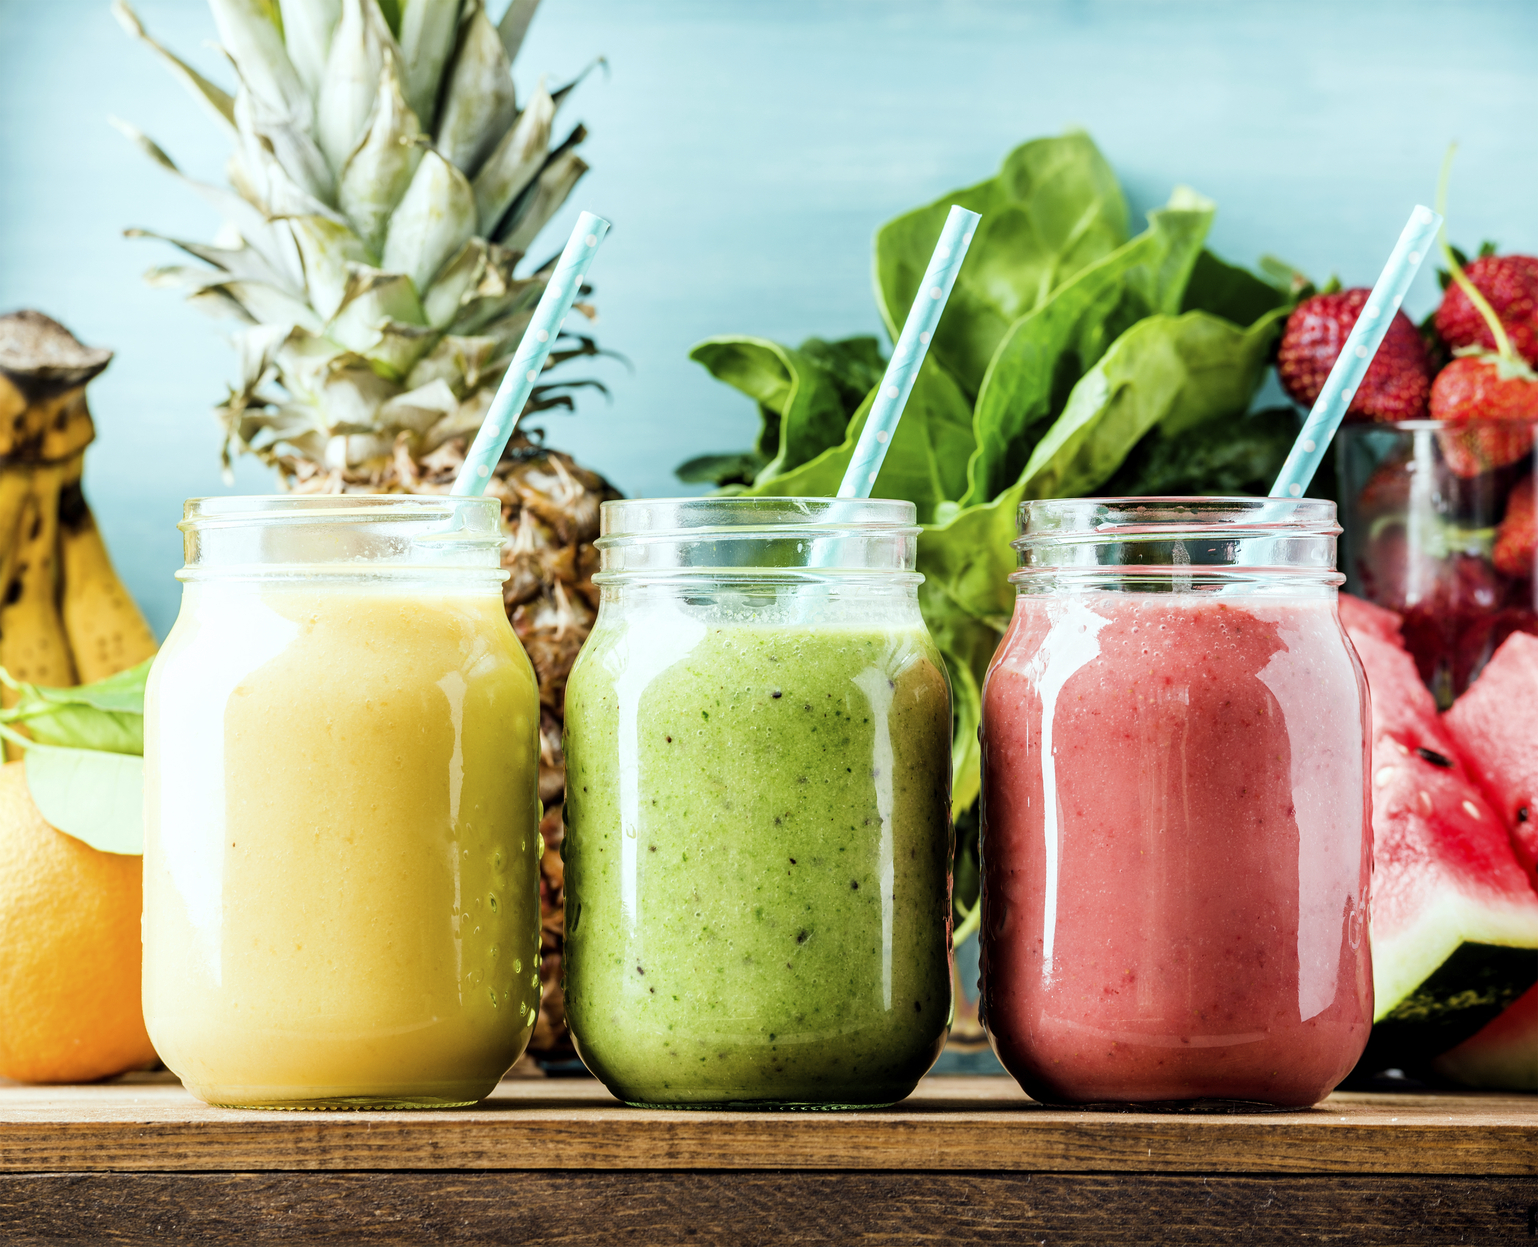 Delish Juices That Are Worth Every Last Squeeze! in Ghaziabad cover pic